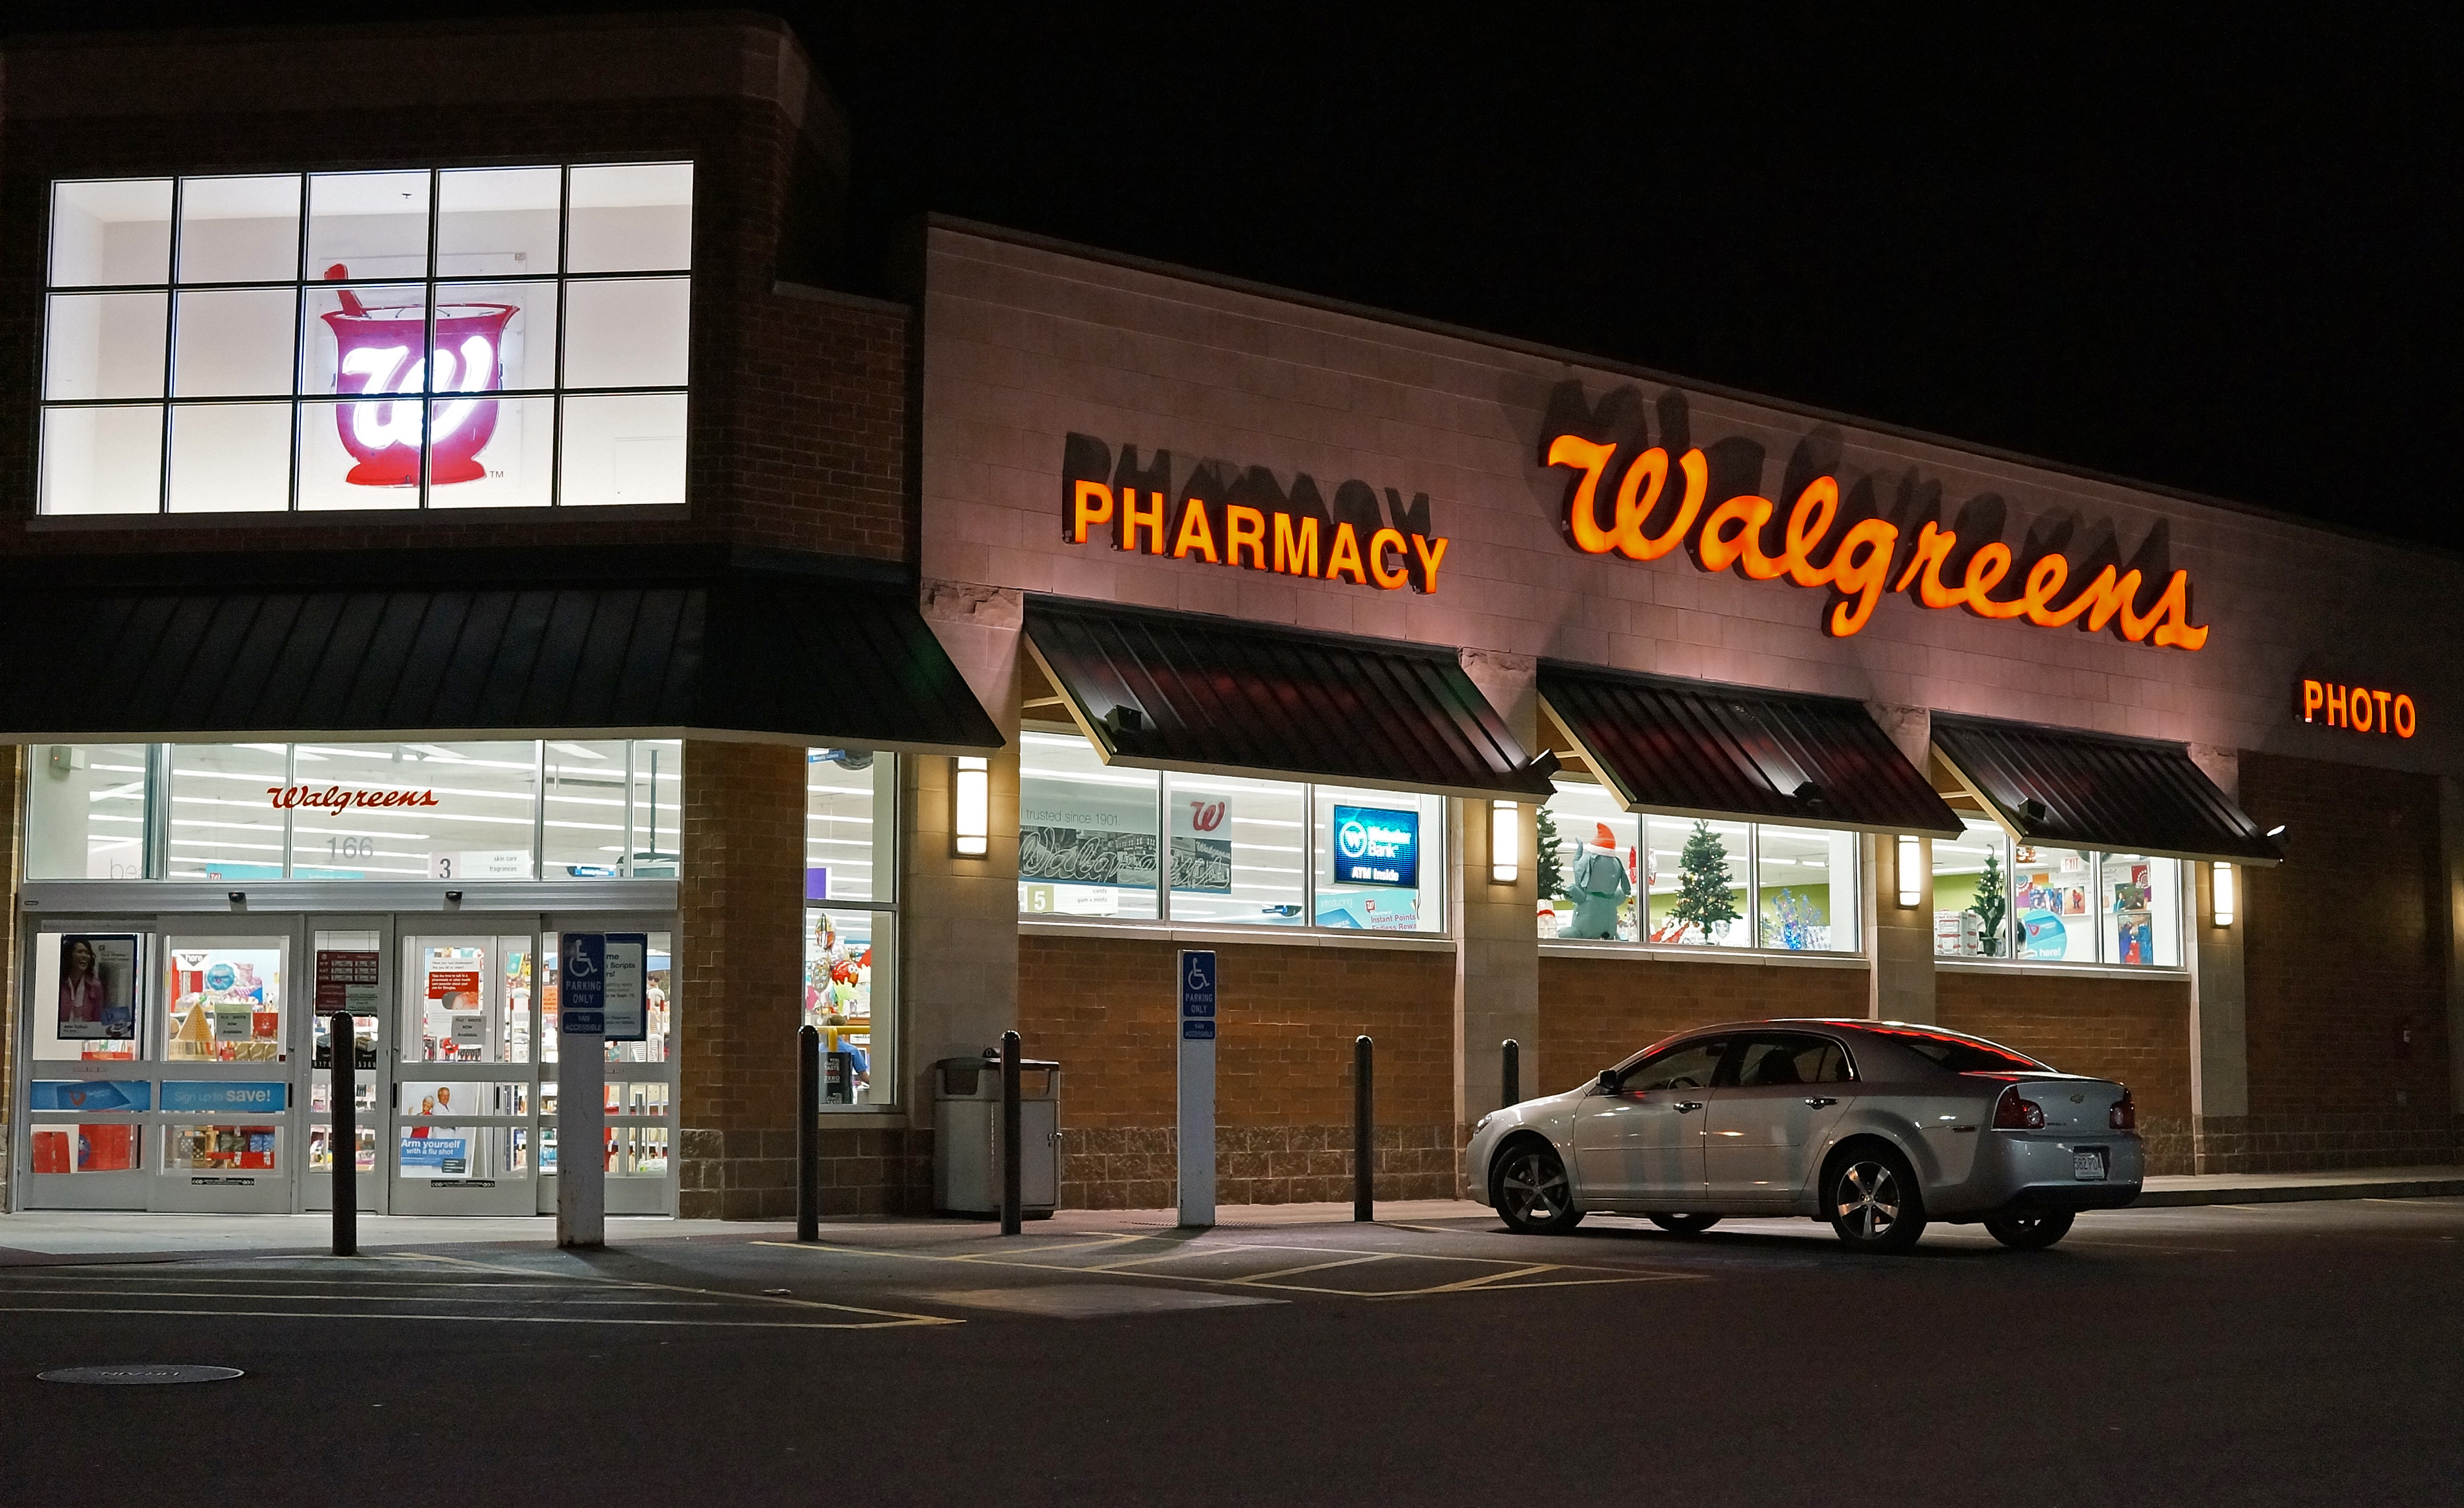 Walgreens Photo is one of the best places for creating digital photos that need to be printed. There are many sites available but Walgreens photo editor is user friendly and hassle-free to use.